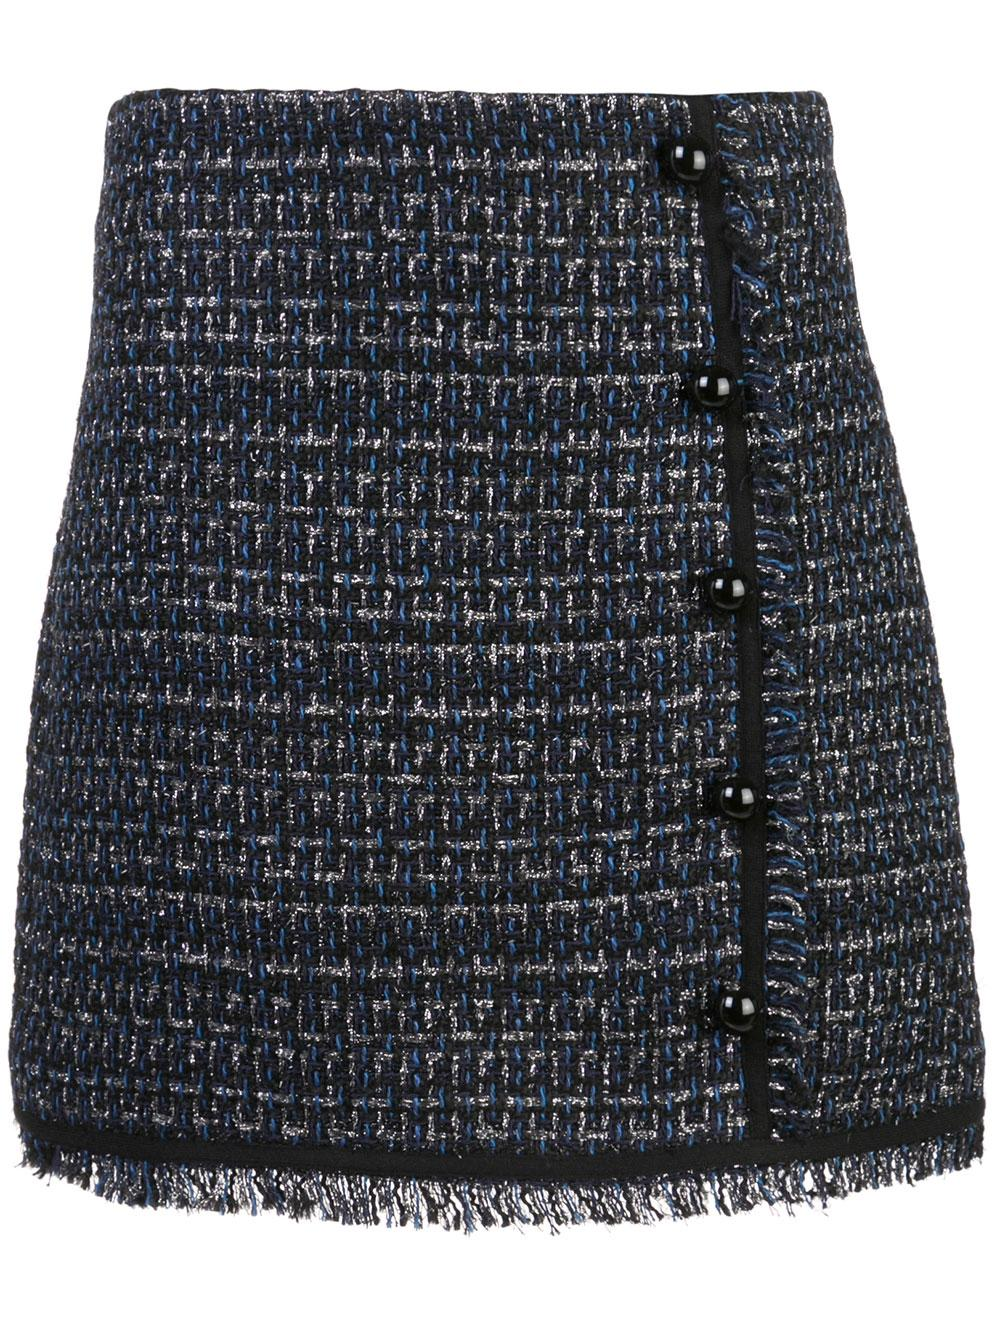 Mirabelle Short Tweed Skirt Item # 1910TW0203271